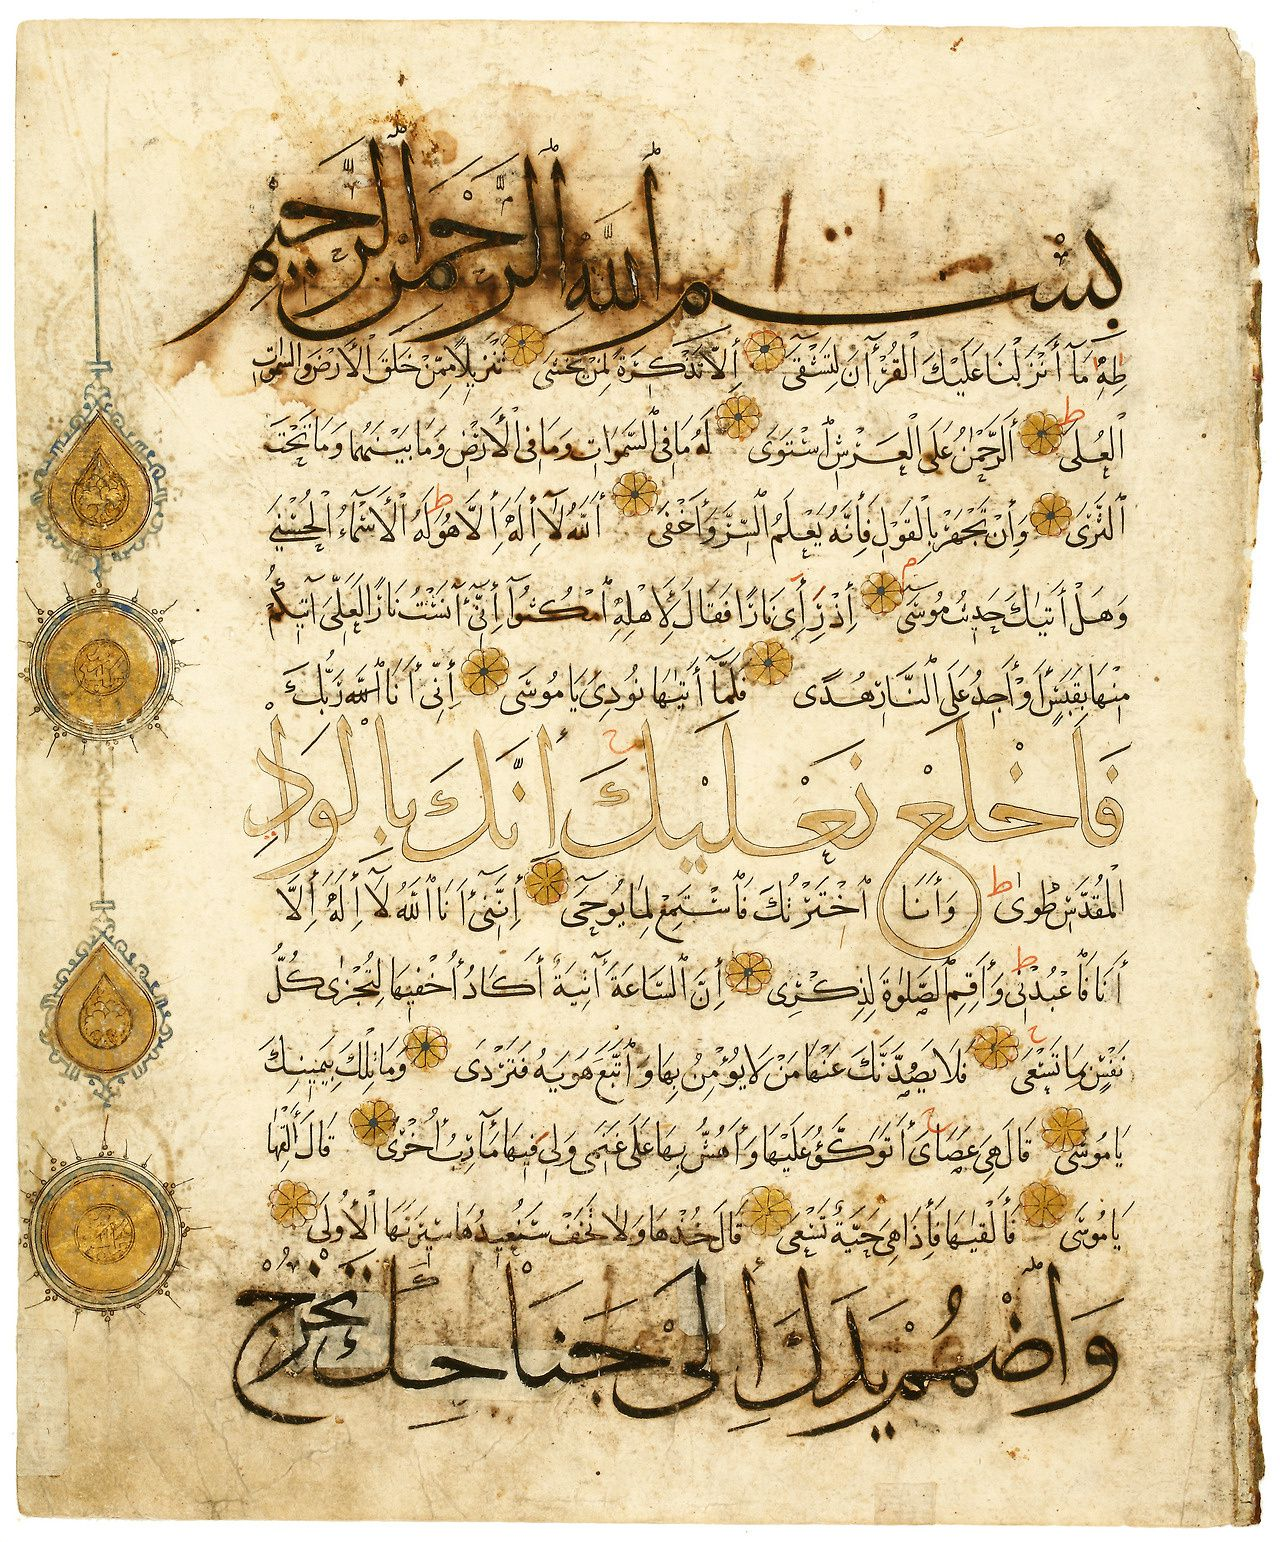 islamic eschatology It is extremely difficult to piece together the islamic concept of the end times the information is greatly disjointed, being spread throughout the hadith.